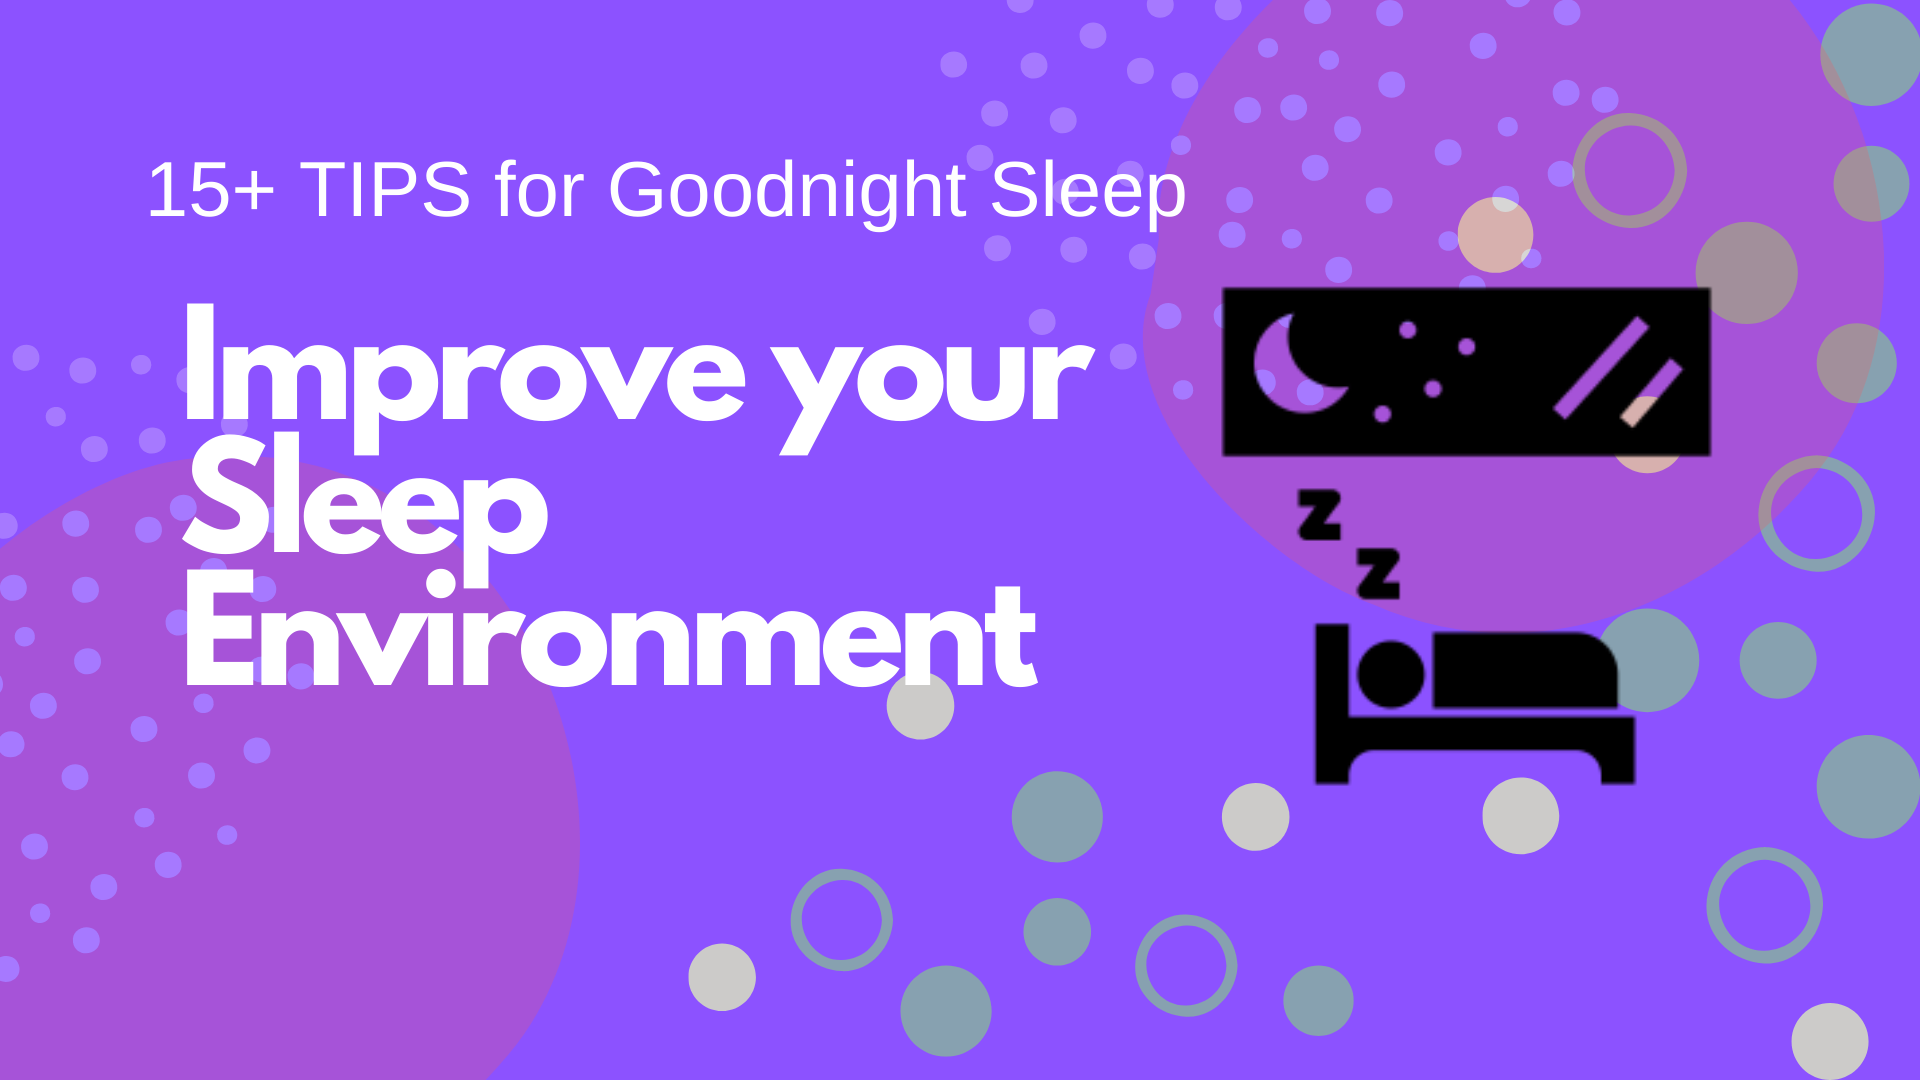 Improve your Sleeping Environment